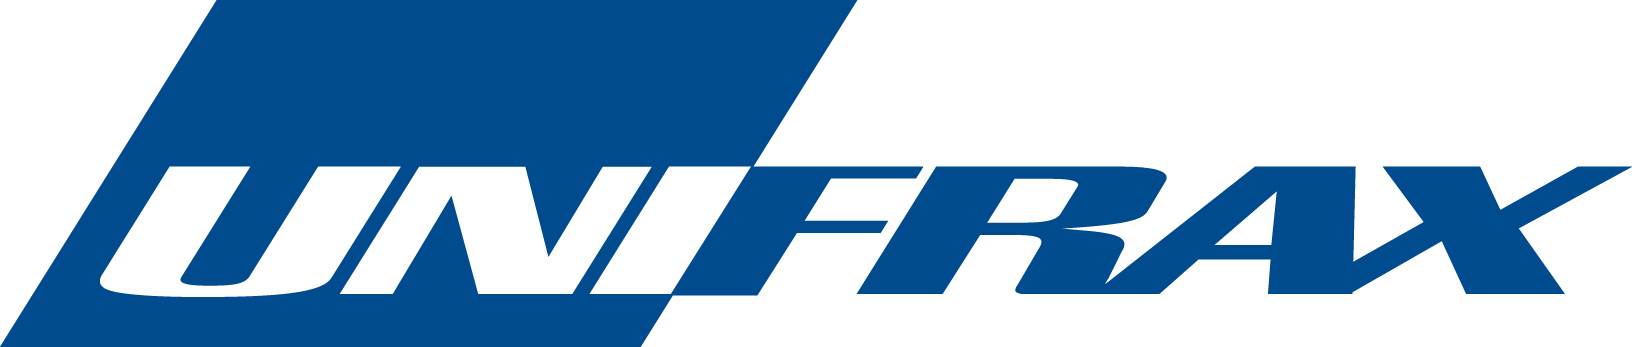 Unifrax Logo